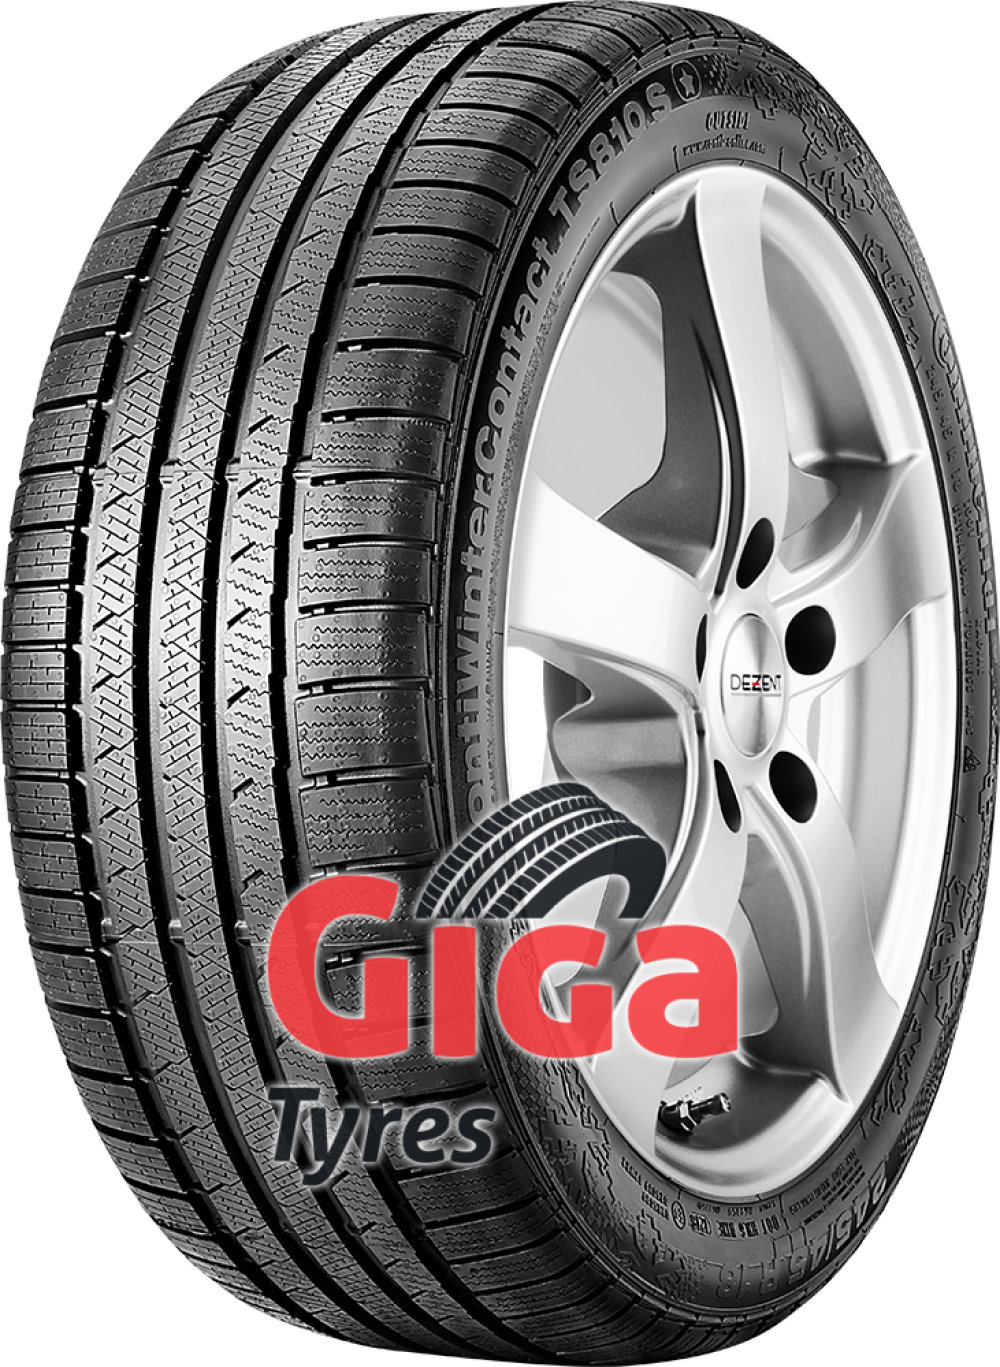 Continental ContiWinterContact TS 810 S ( 245/40 R18 97W XL AO, with kerbing rib )